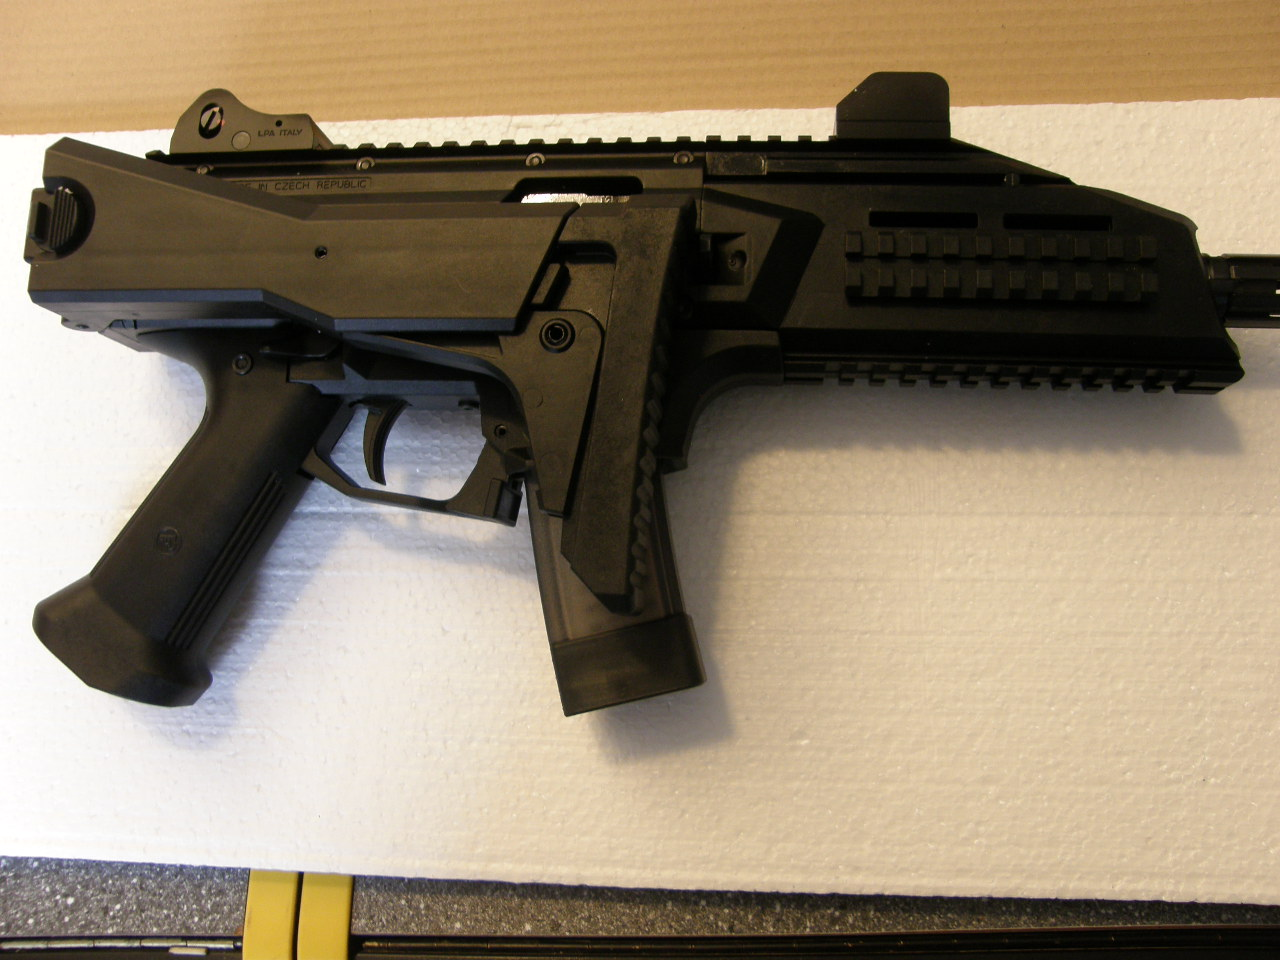 Skorpion CZ EVO S1 r. 9 mm Luger